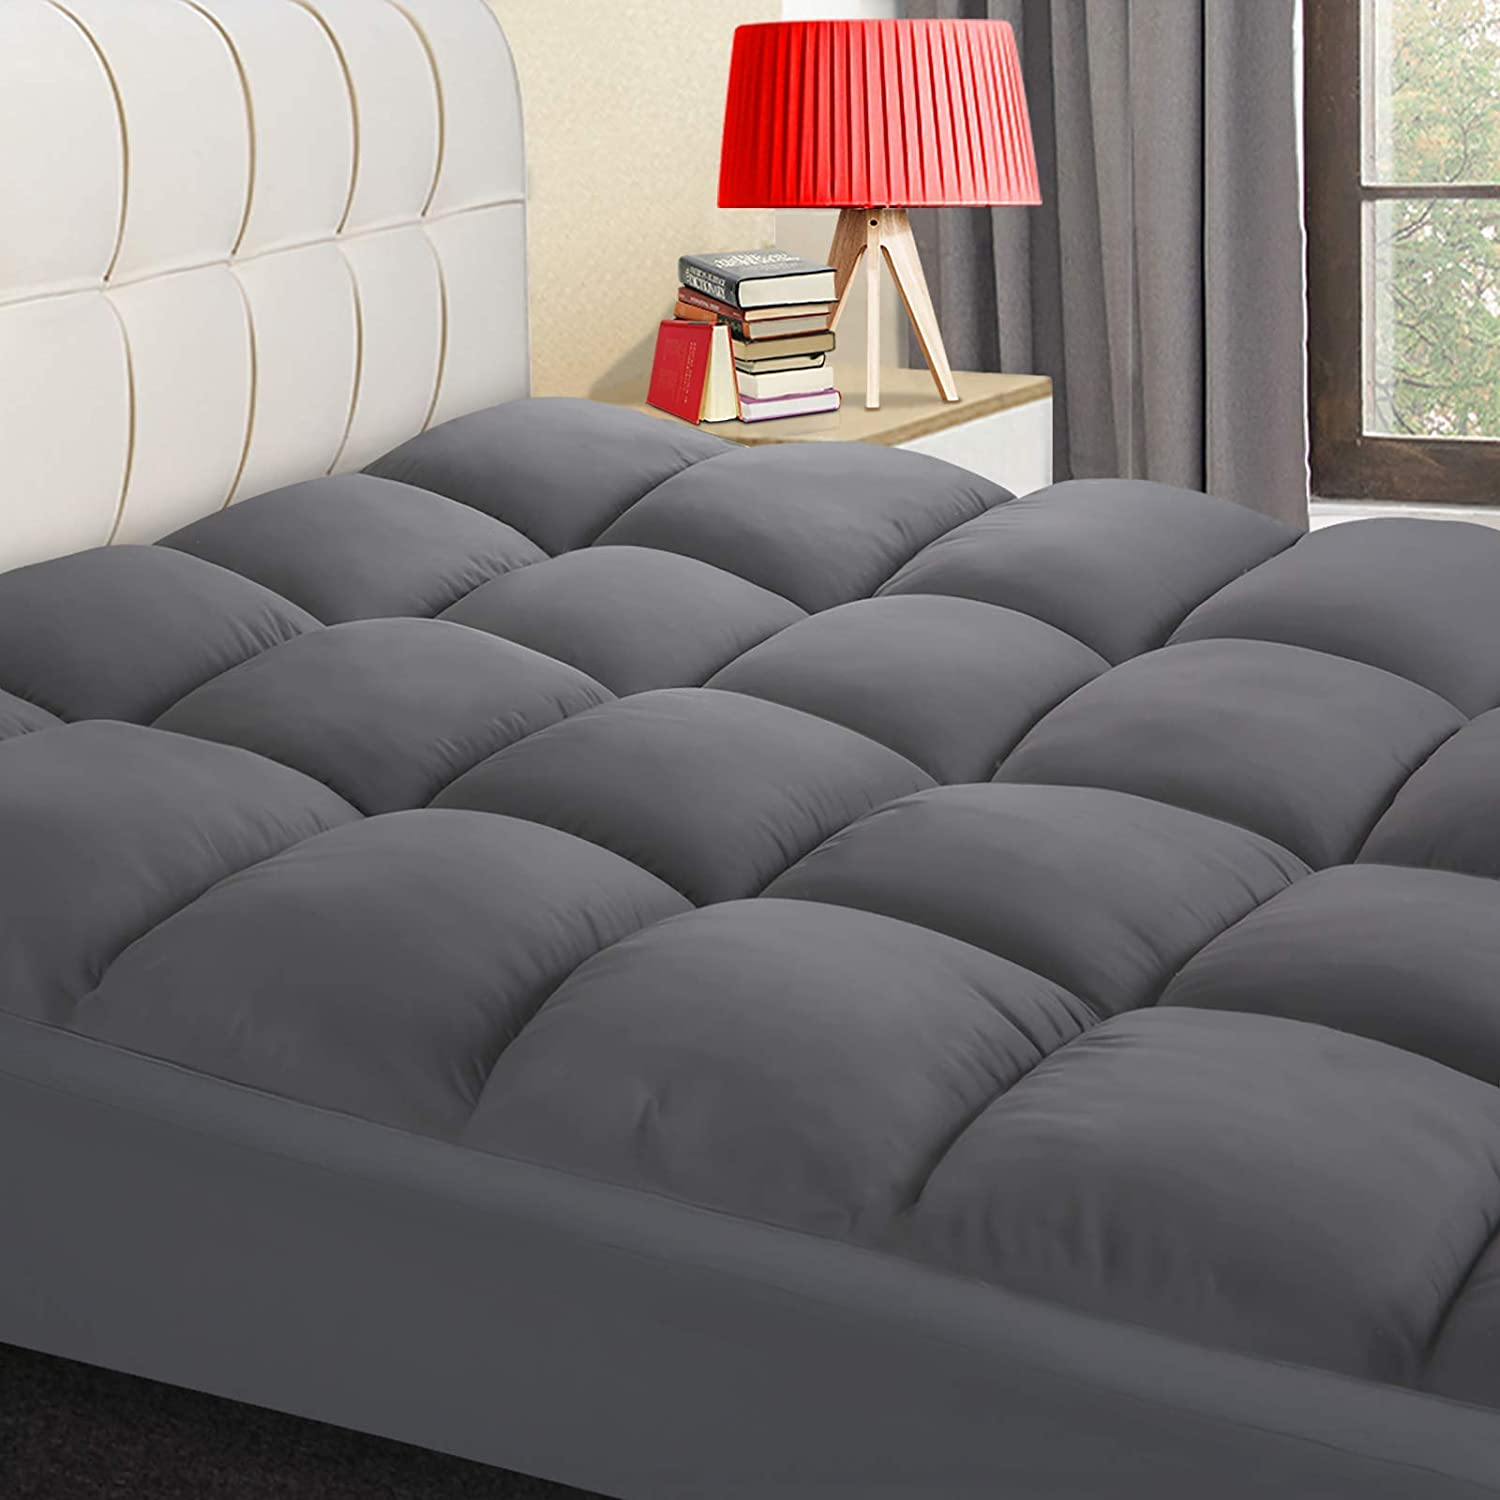 COONP Mattress Topper, Extra Thick Mattress Pad Cover, Cooling Pillowtop with 8-21 Inch Deep Pocket 3D Snow Down Alternative Fill(Full XL, Grey)